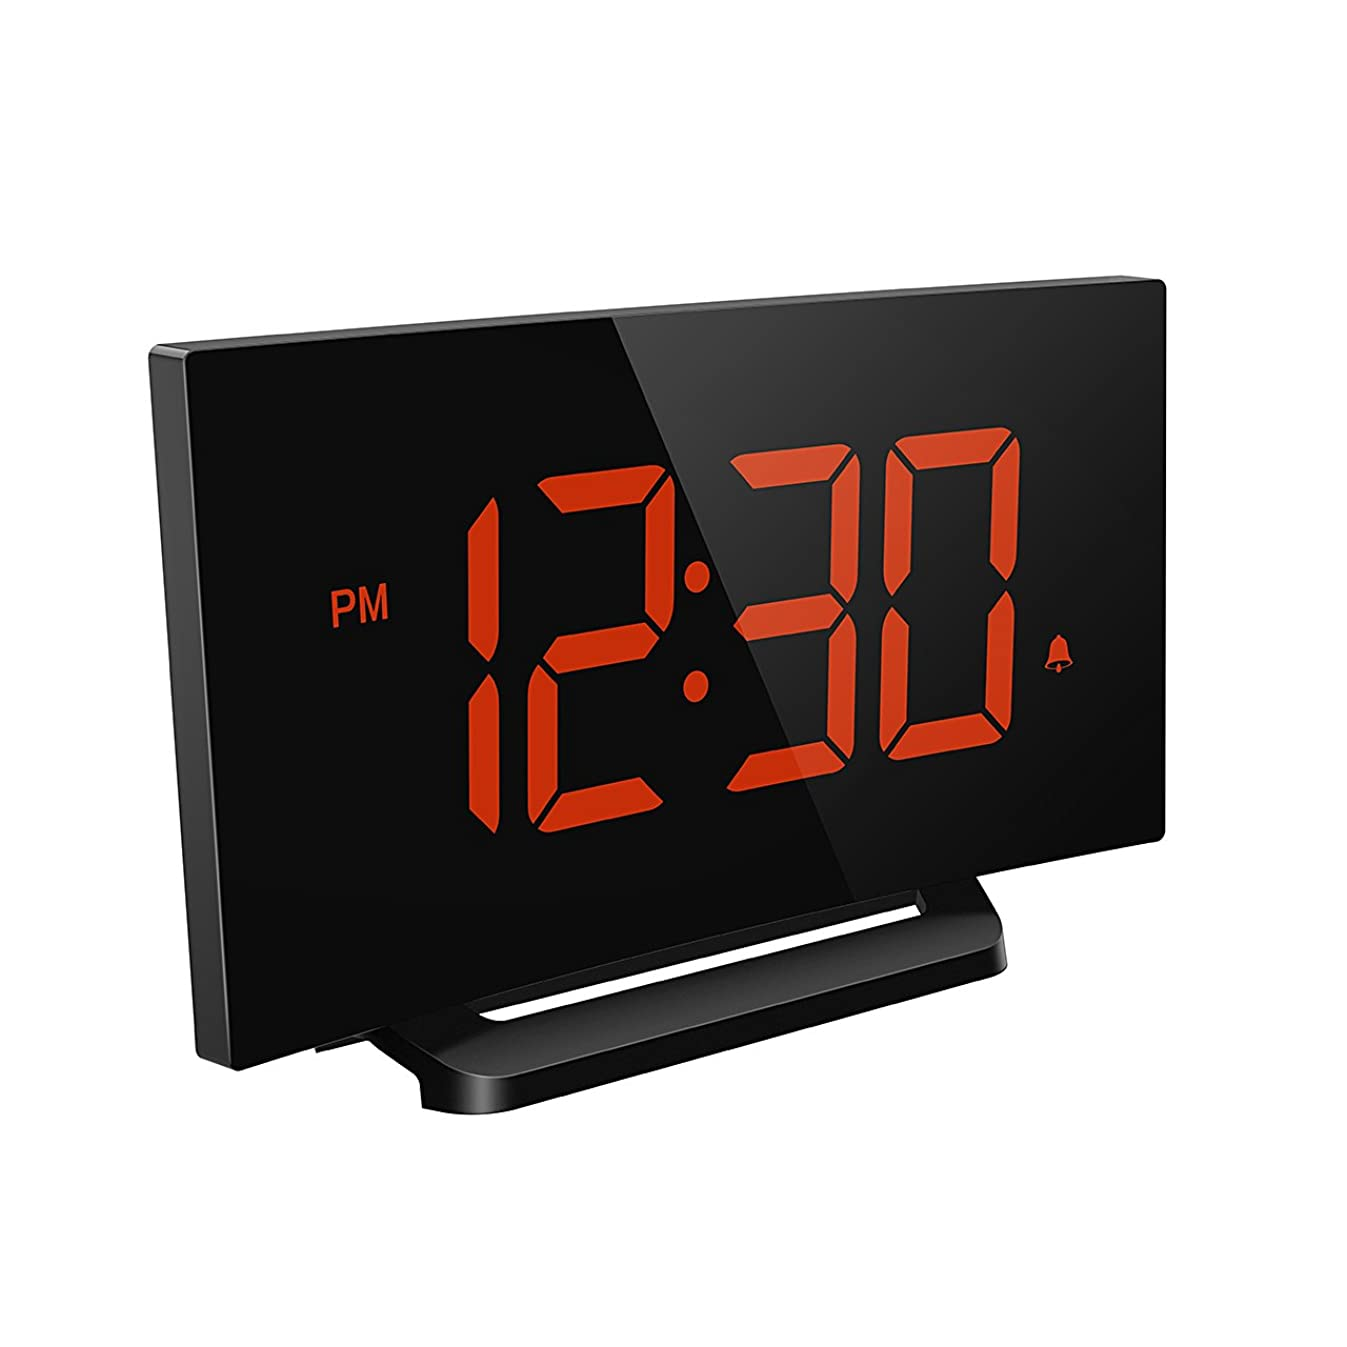 Mpow Digital Alarm Clock, Curved-Screen Clock with 3.75'' LED Dimmer Digits Display, Bedside Alarm Clock with 3 Alarm Sounds, 30 Minute Ring Time, 12/24 Hour, Backup for Clock Setting, Orange